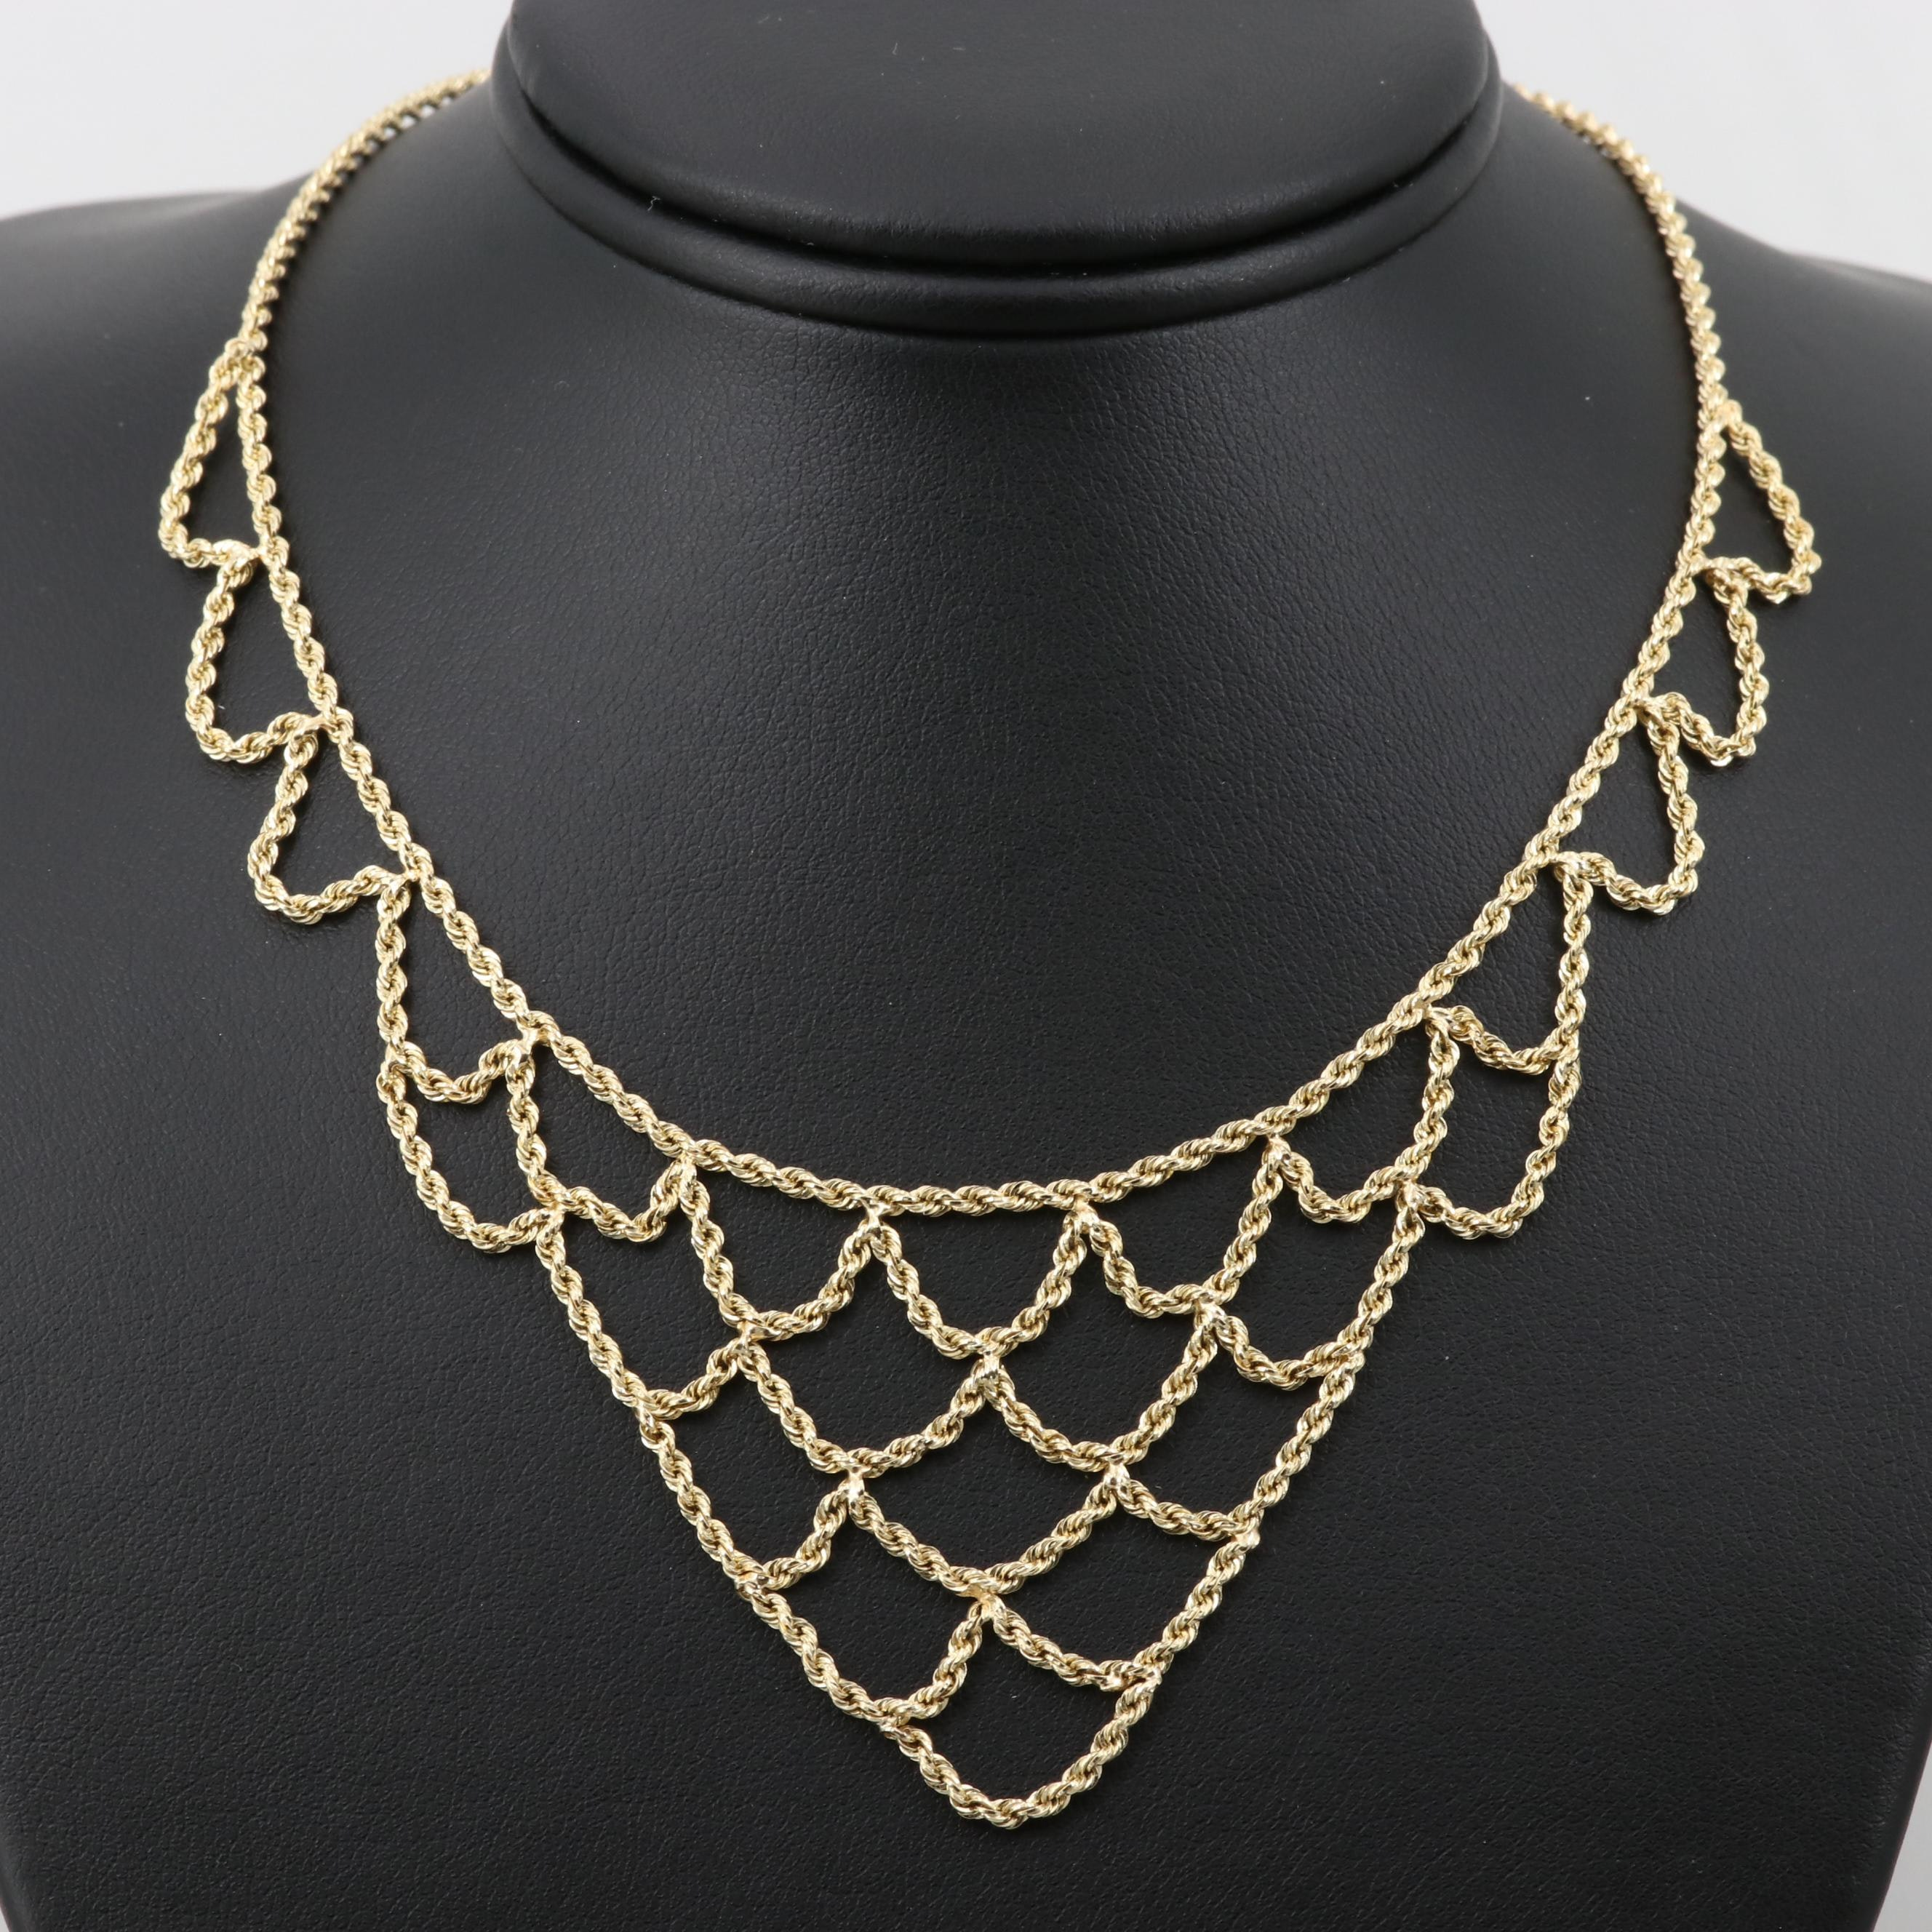 14K Yellow Gold Rope Bib Necklace